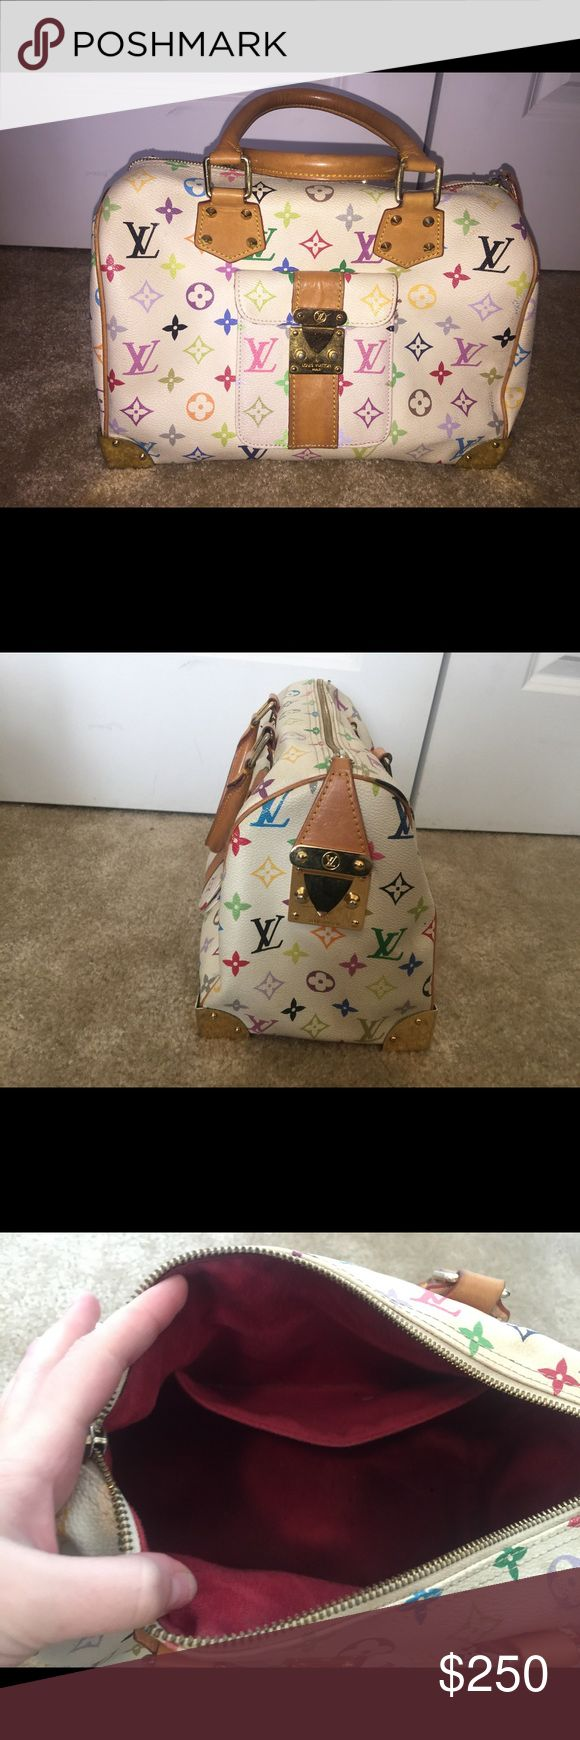 Authentic Louis Vuitton Speedy 40 MultiColor White MultiColor Louis Vuitton. Authentic (code in pocket) Lots of room. More pics can be provided upon request. Louis Vuitton Bags